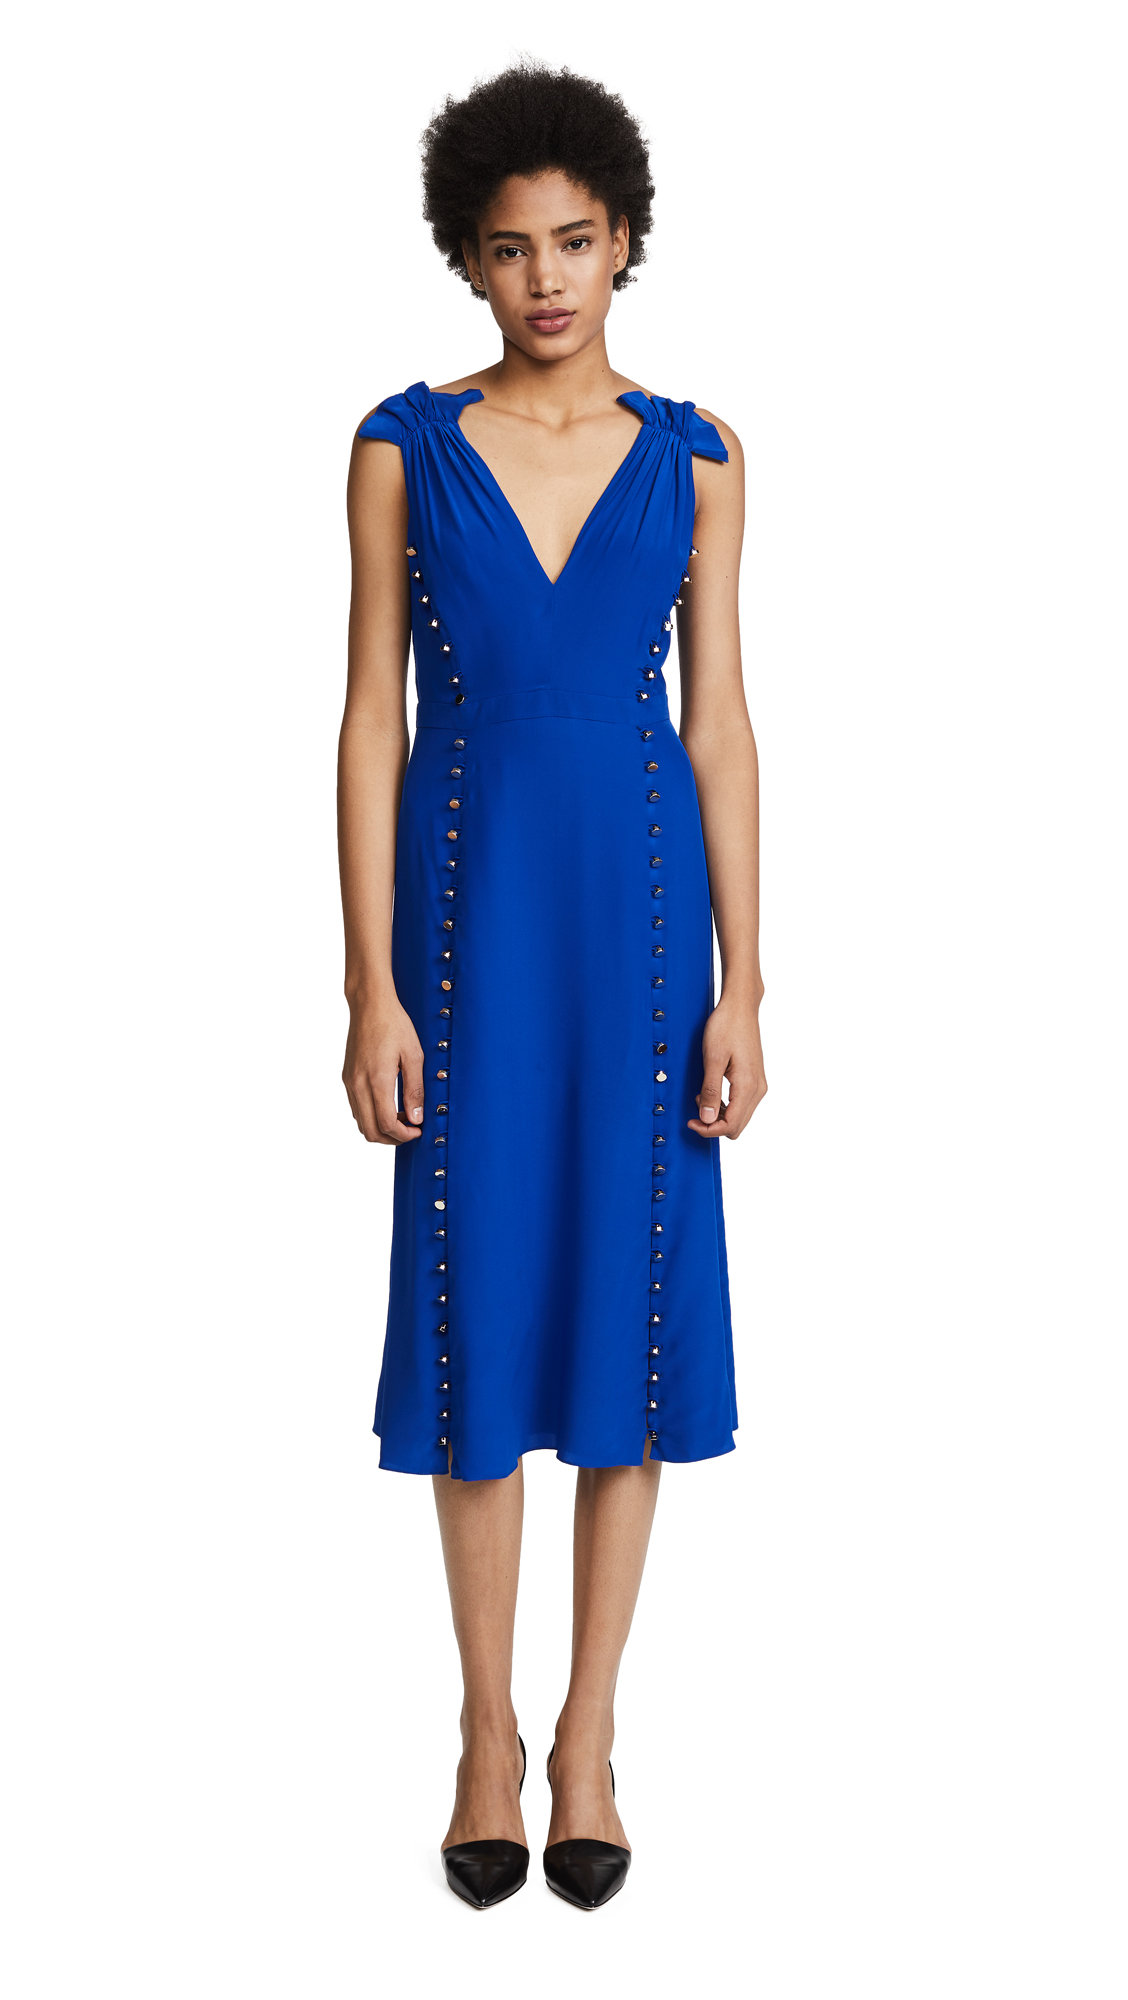 Prabal Gurung Deep V Dress with Button Detail In Cobalt